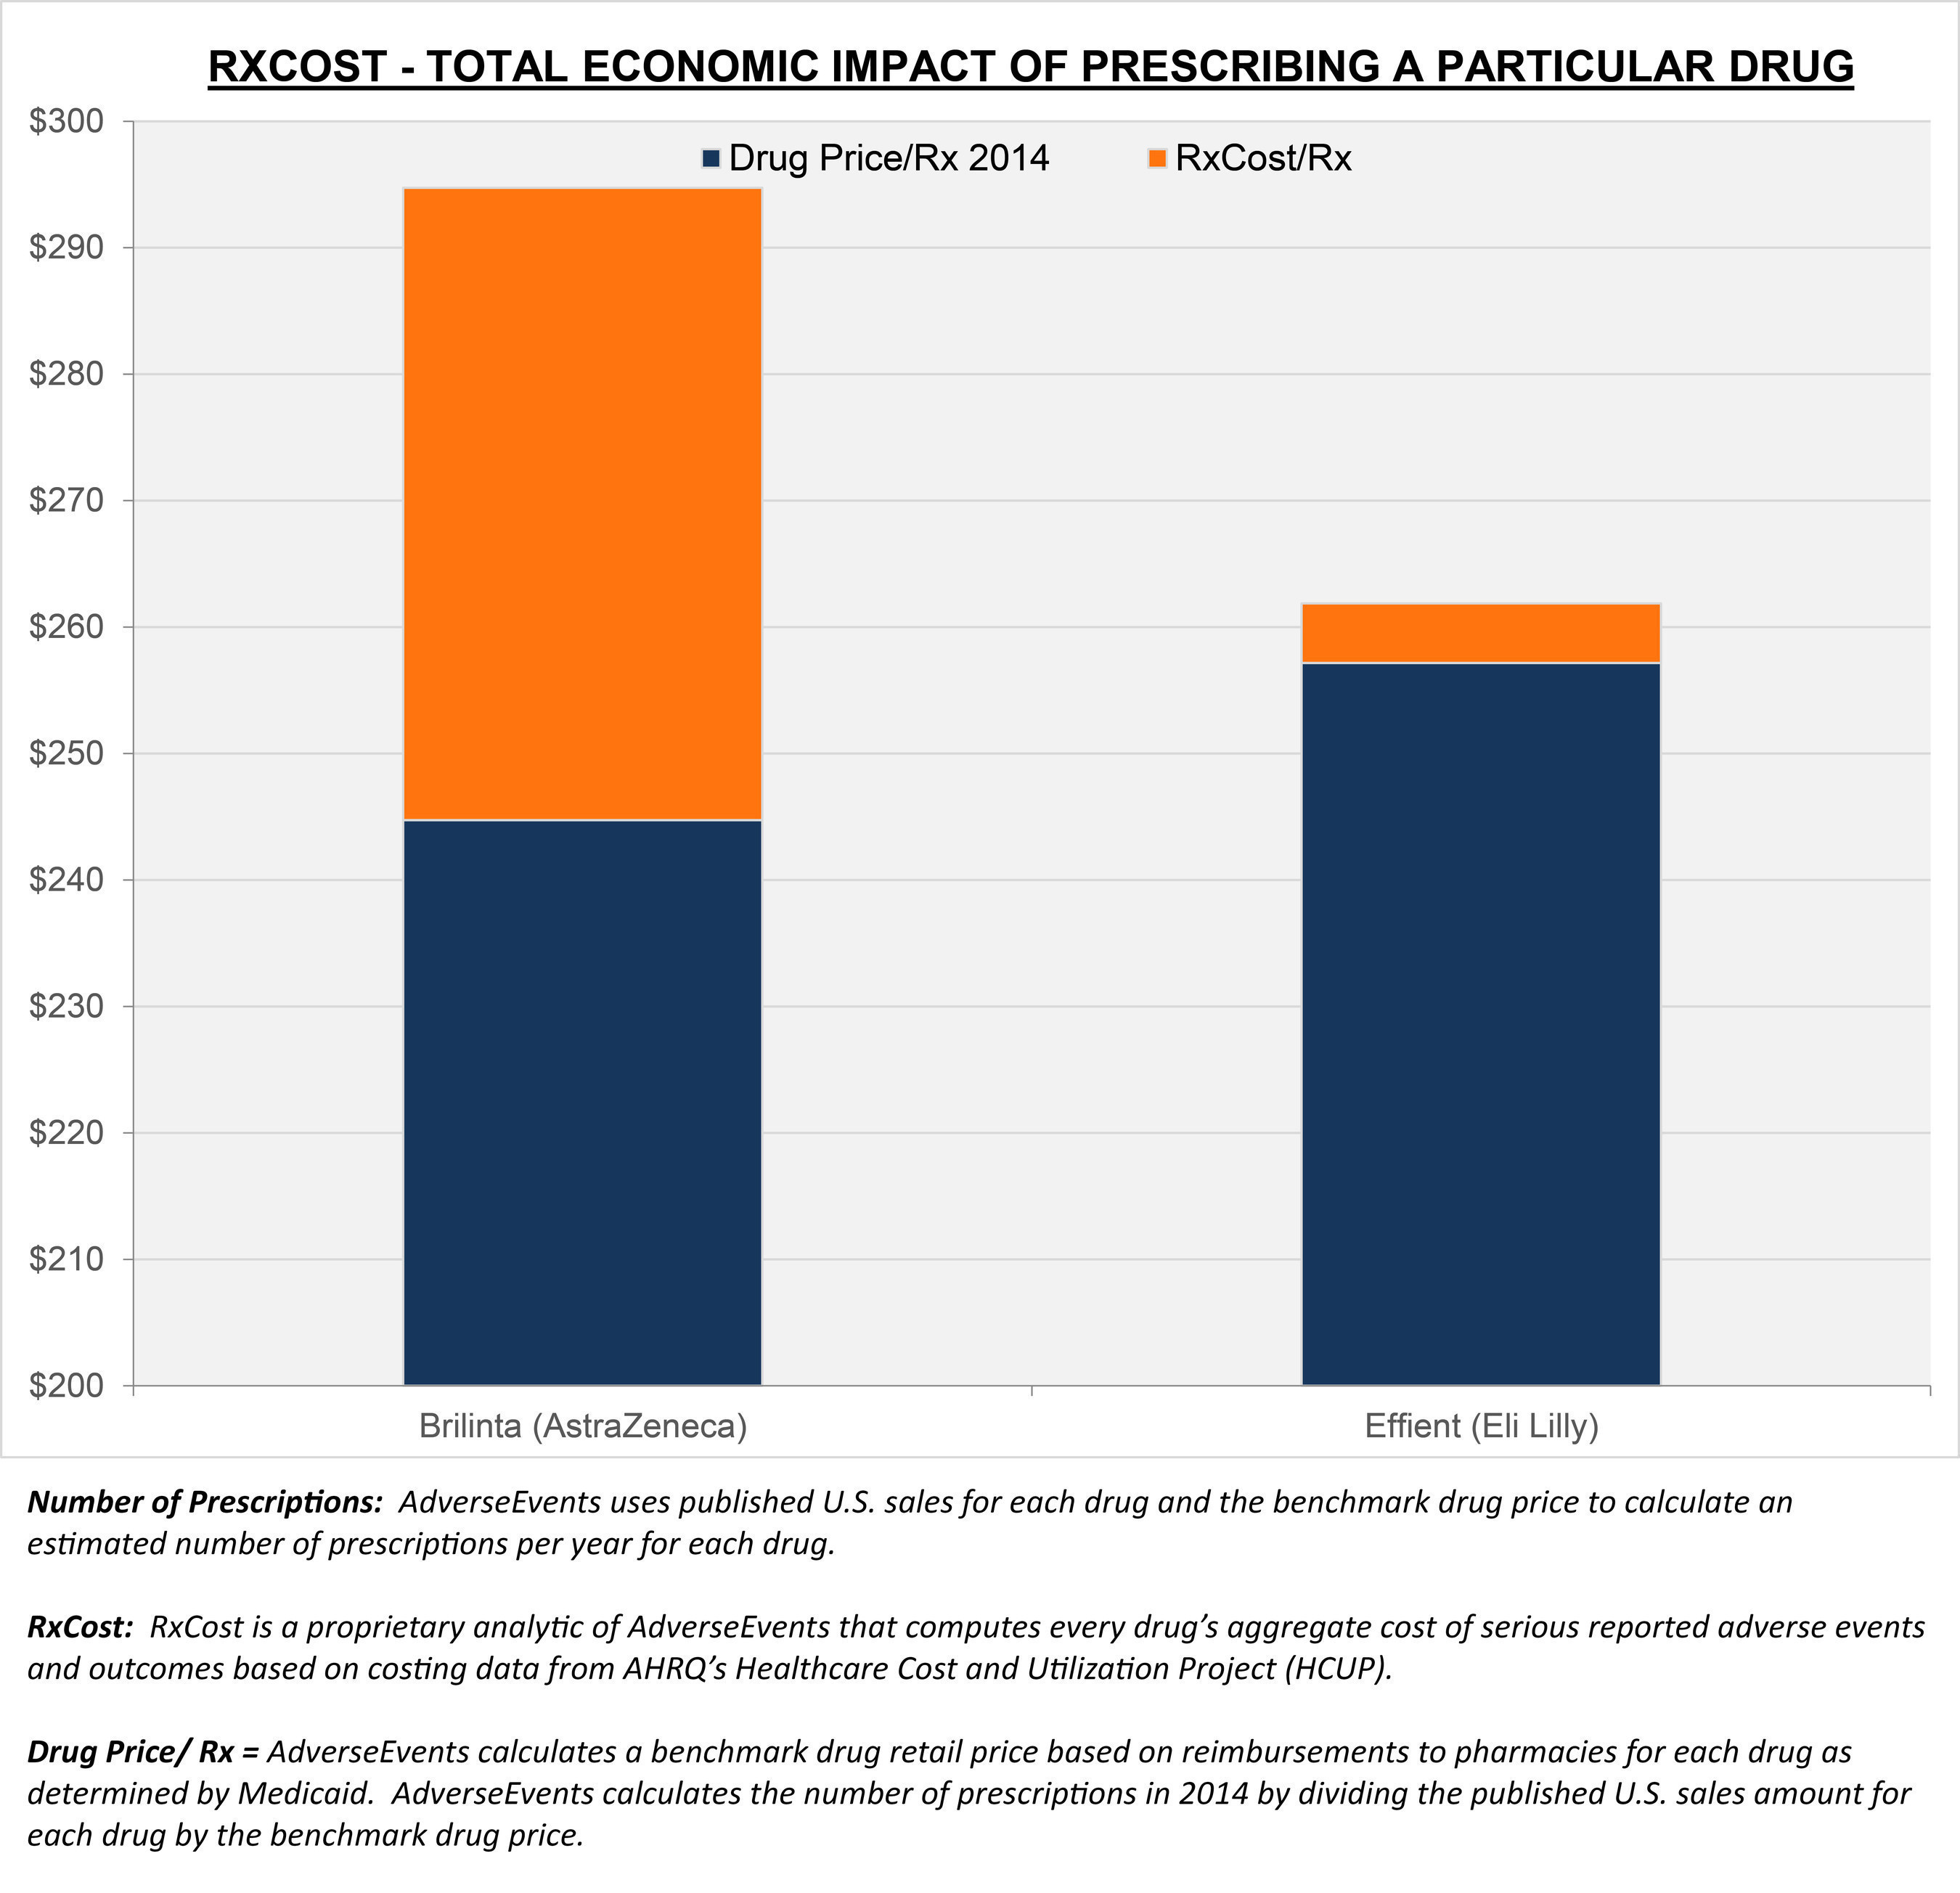 Brilinta (AstraZeneca) and Effient (Eli Lilly) are FDA-approved prescription drugs intended to reduce the likelihood of thrombotic cardiovascular events such as heart attack. The above RxCost chart suggests that while the purchase price of Brilinta may be cheaper than Effient, the total downstream costs of side effects associated with its use will result in larger total expenditures.